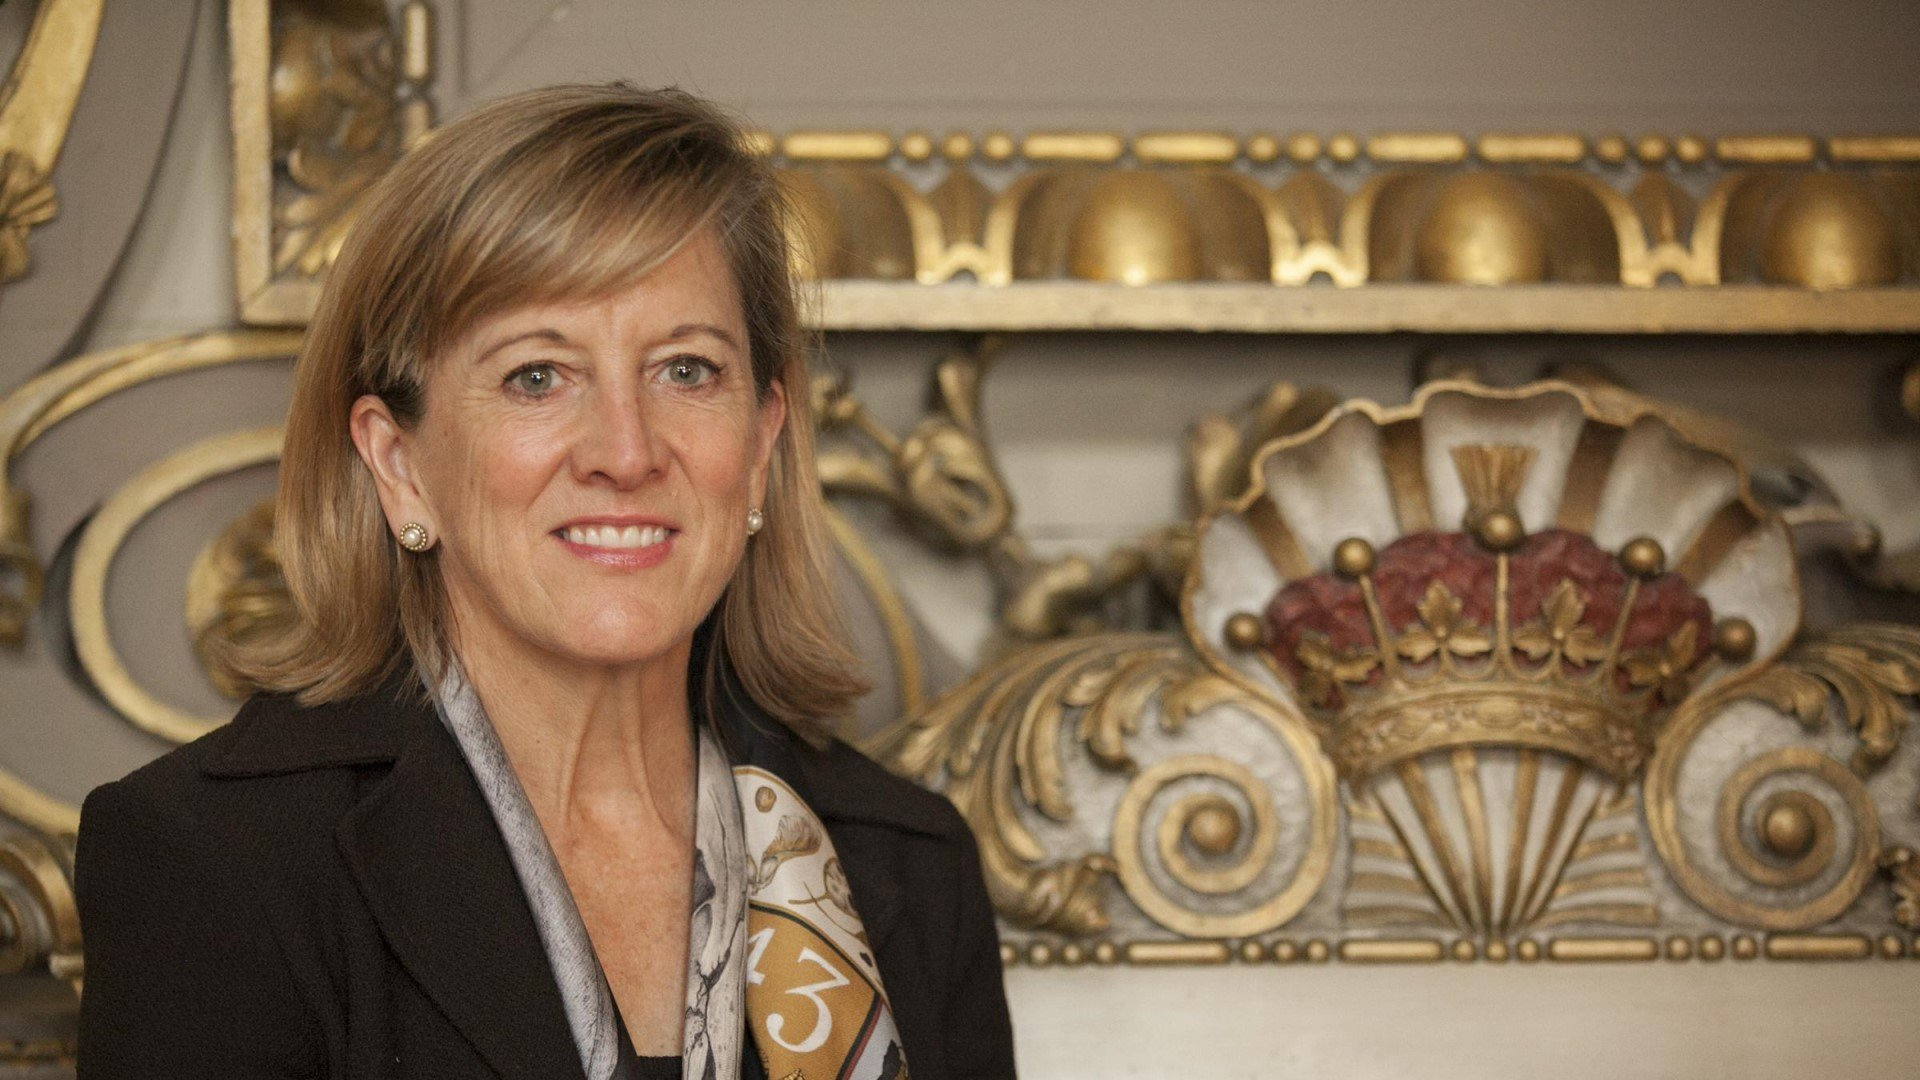 Marjorie Neasham Glasgow has been appointed as Her Majesty's Lord-Lieutenant of the County of Oxfordshire